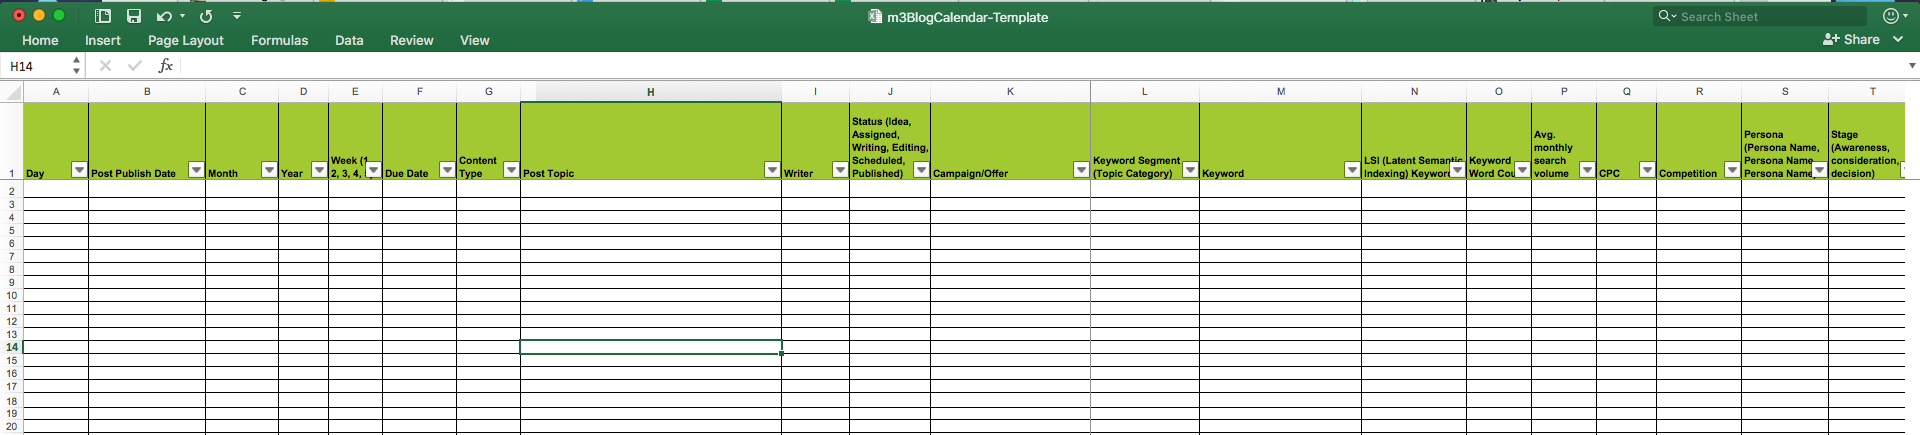 Editorial calendar templates for content marketing the for Blogger product review template